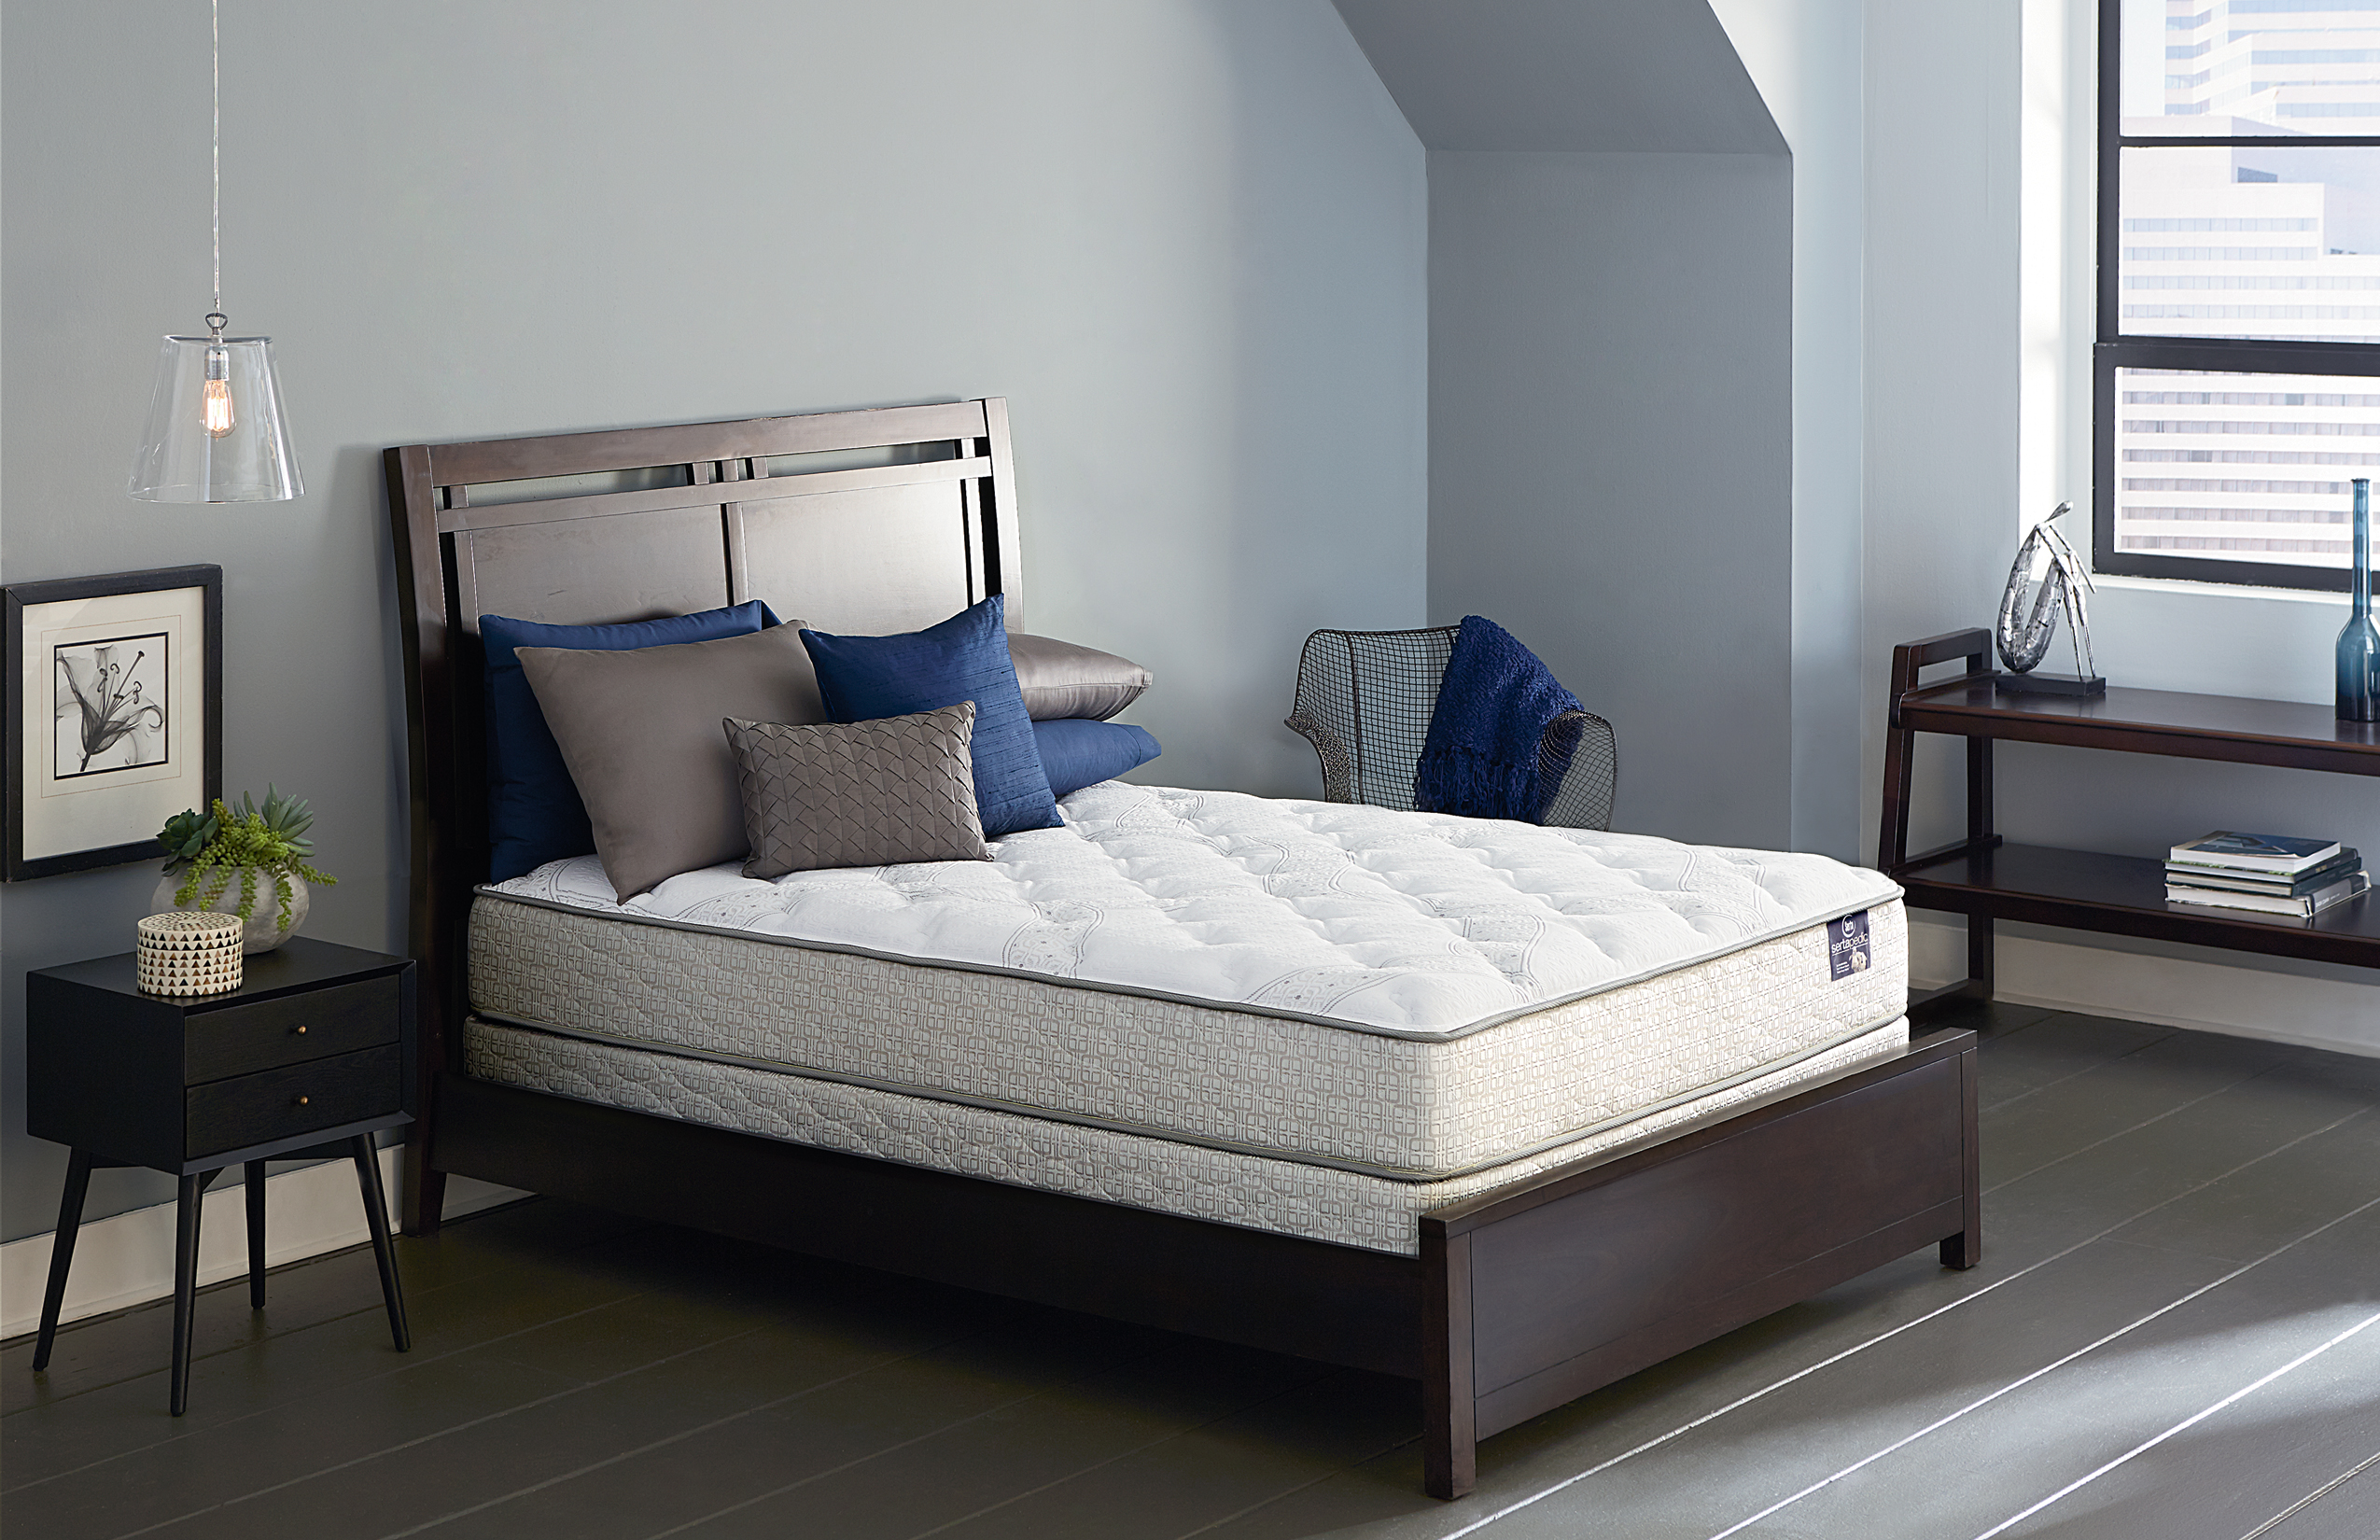 garden mattresses shipping firm overstock box set mattress home cromwell product today queen serta and size spring free